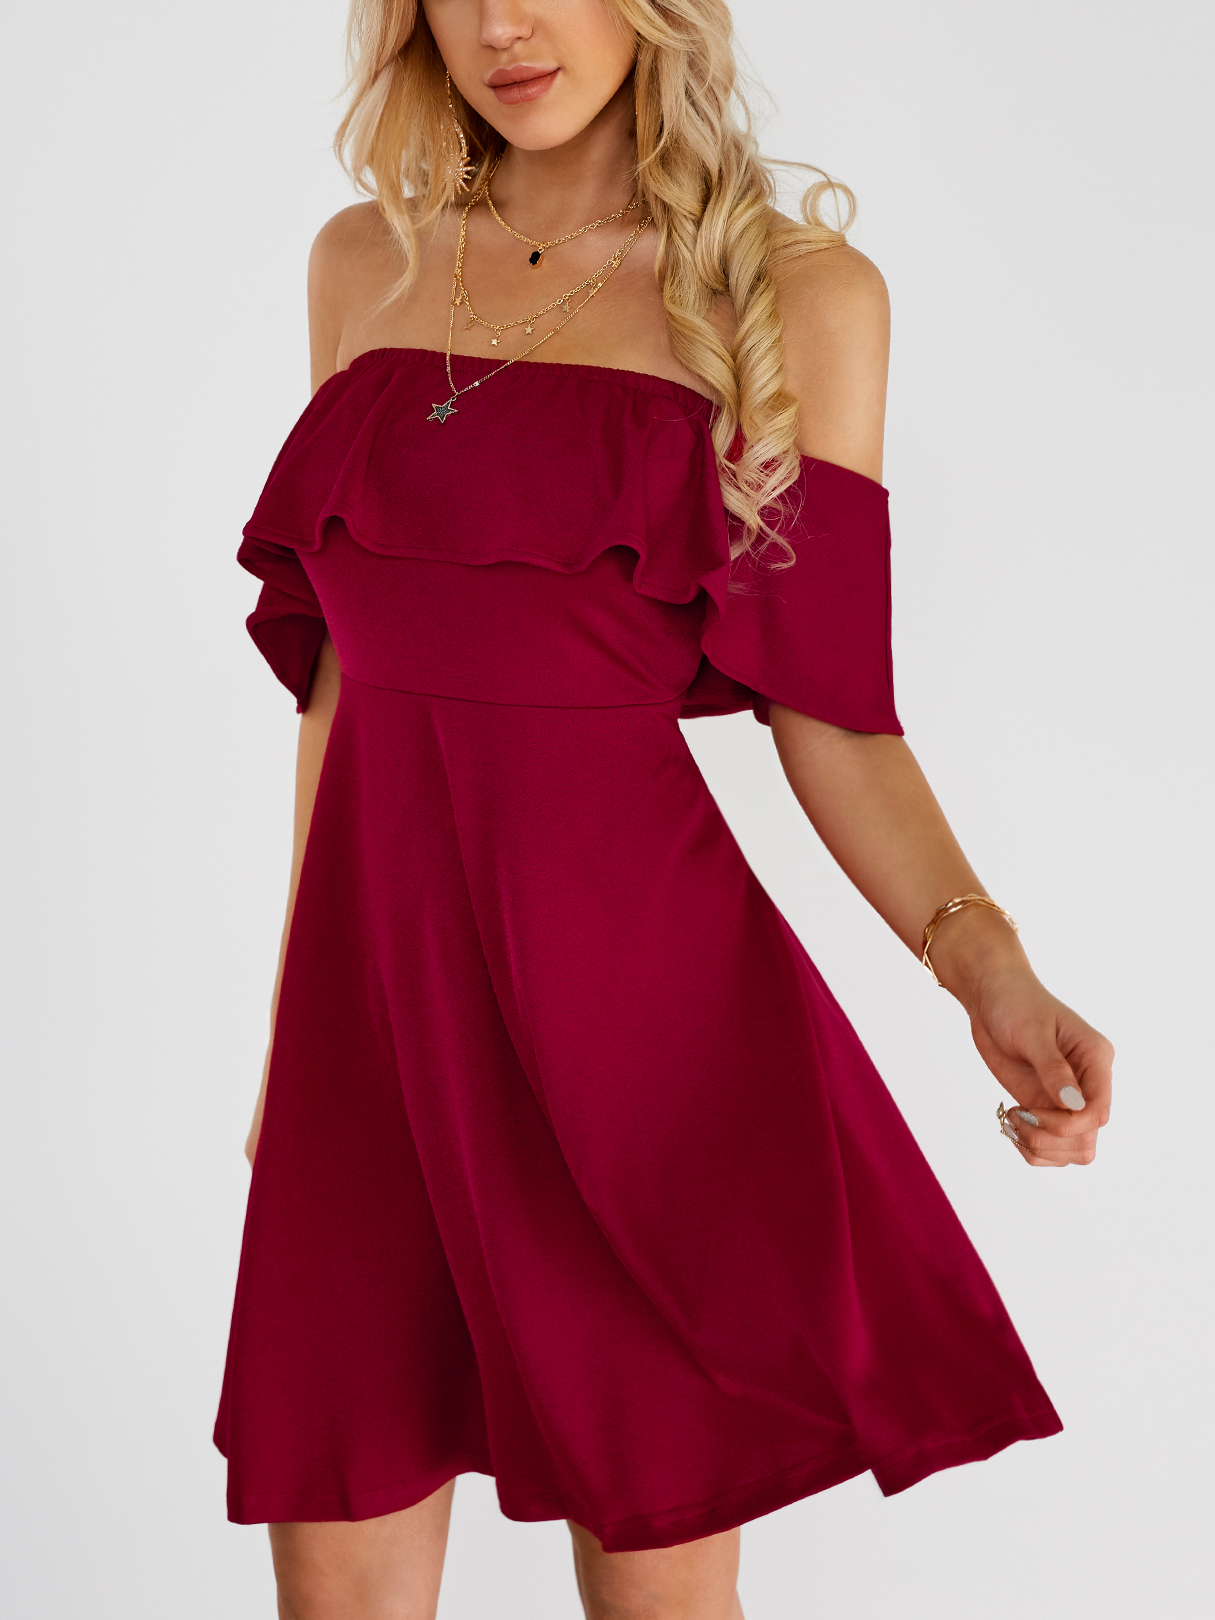 Red Off-the-shoulder Overlay Backless Mini Dress cute off the shoulder lemon dress for women